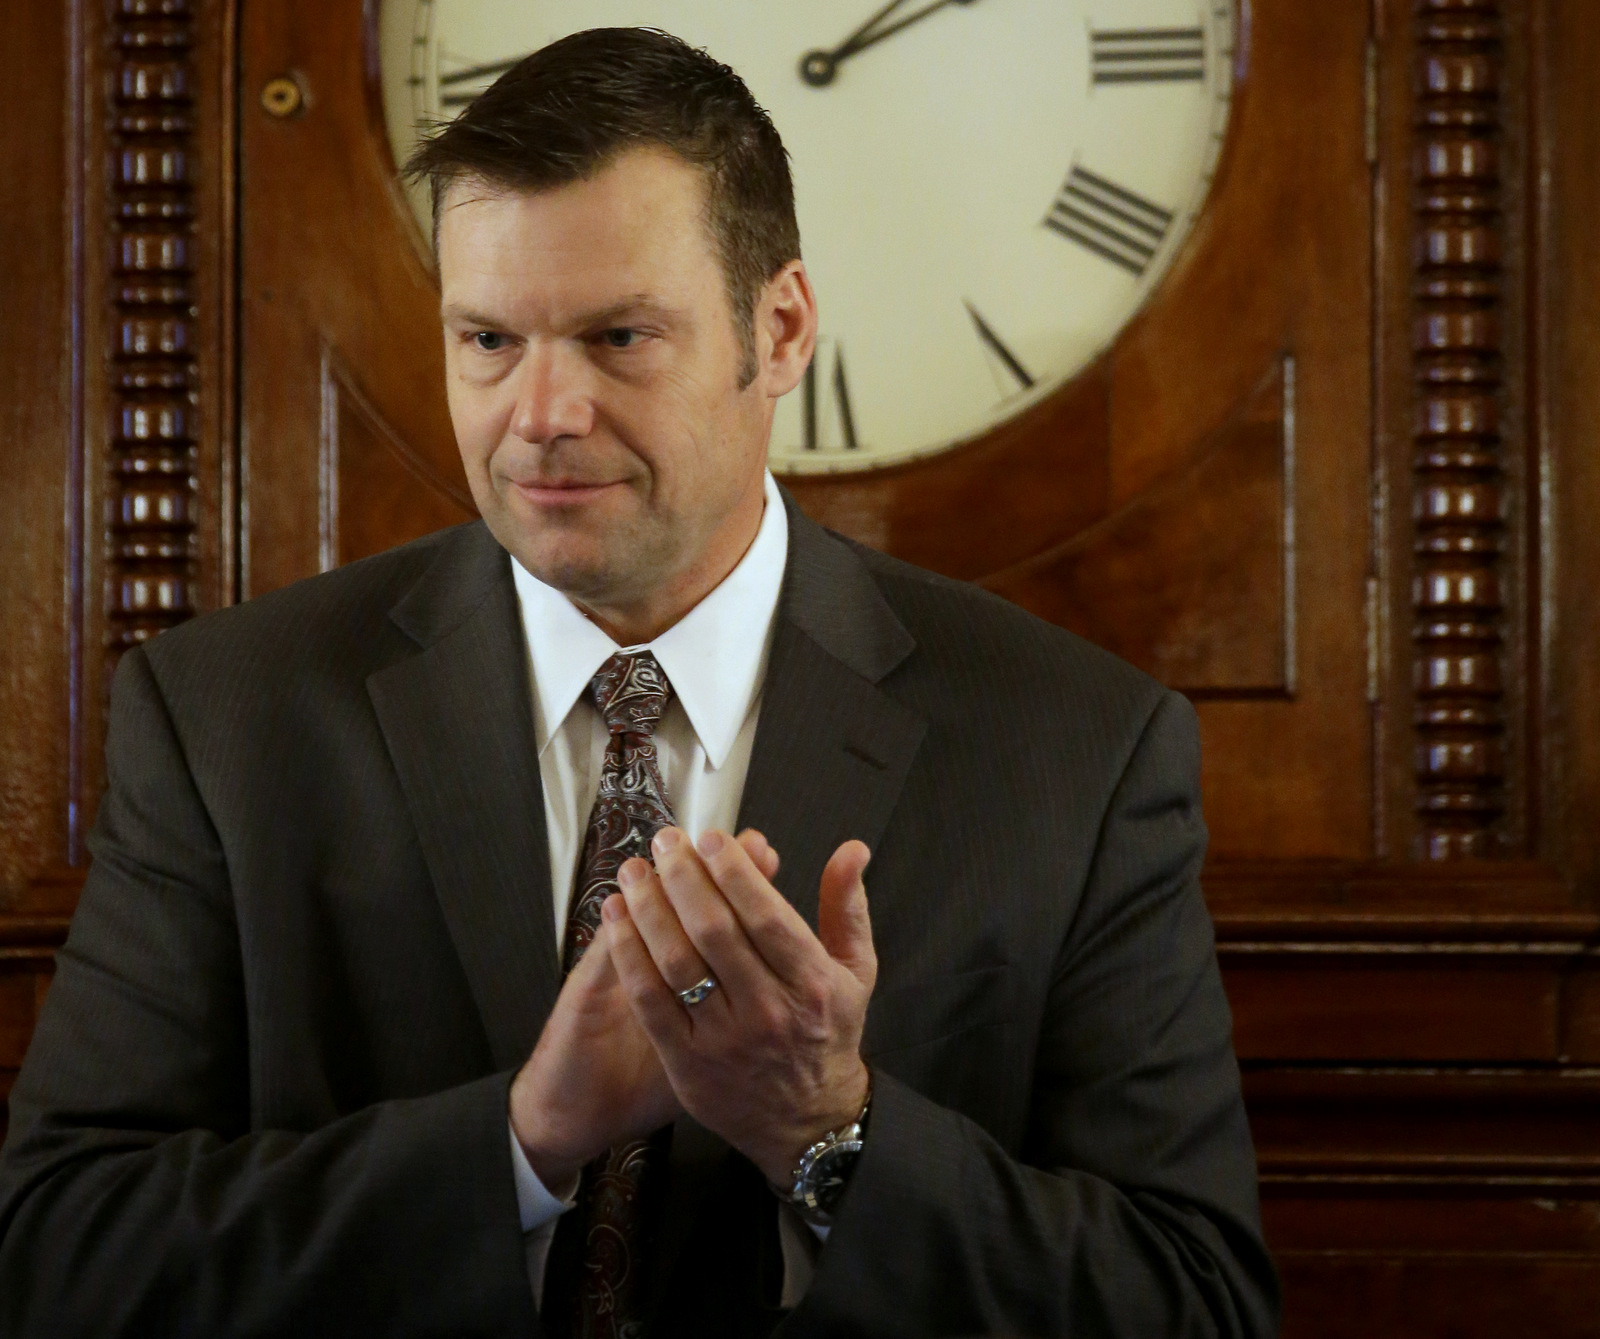 In this Monday, Jan. 12, 2015 photo, Kansas Secretary of State Kris Kobach presides over the Kansas House while new members are sworn in during the opening day of the Kansas legislature in Topeka, Kan. (AP Photo/Charlie Riedel, File)